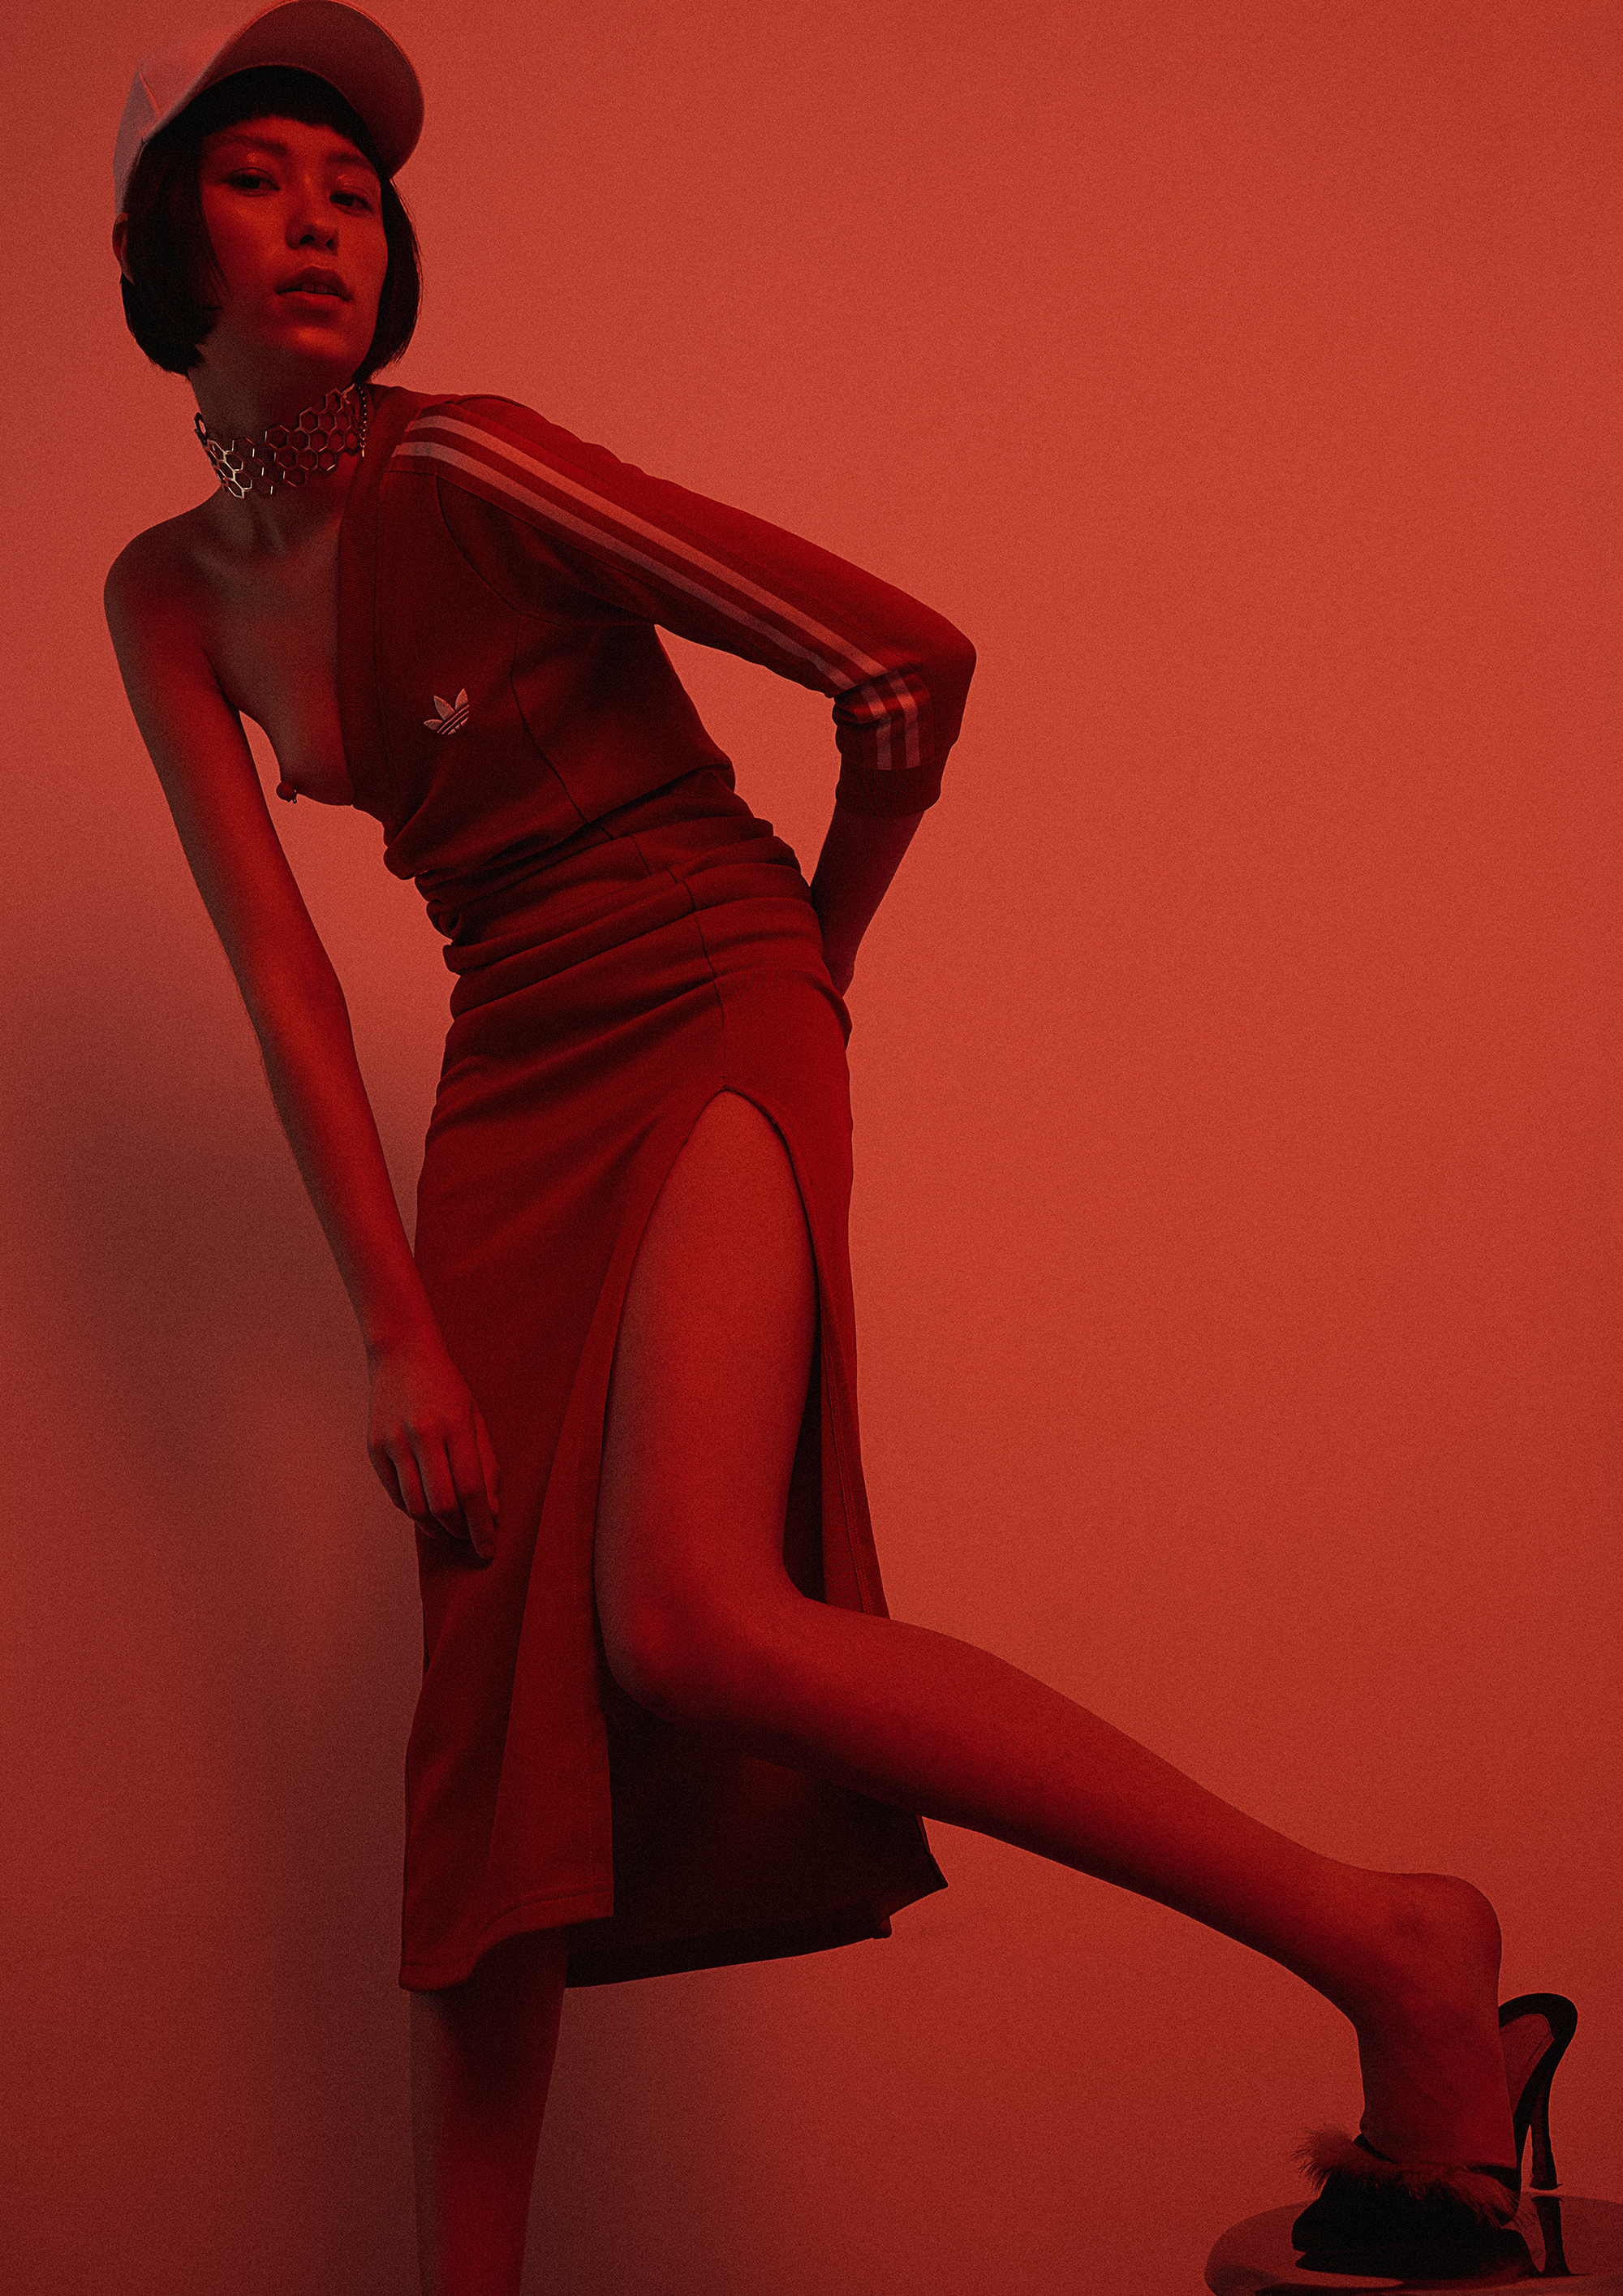 ffw_red_62565